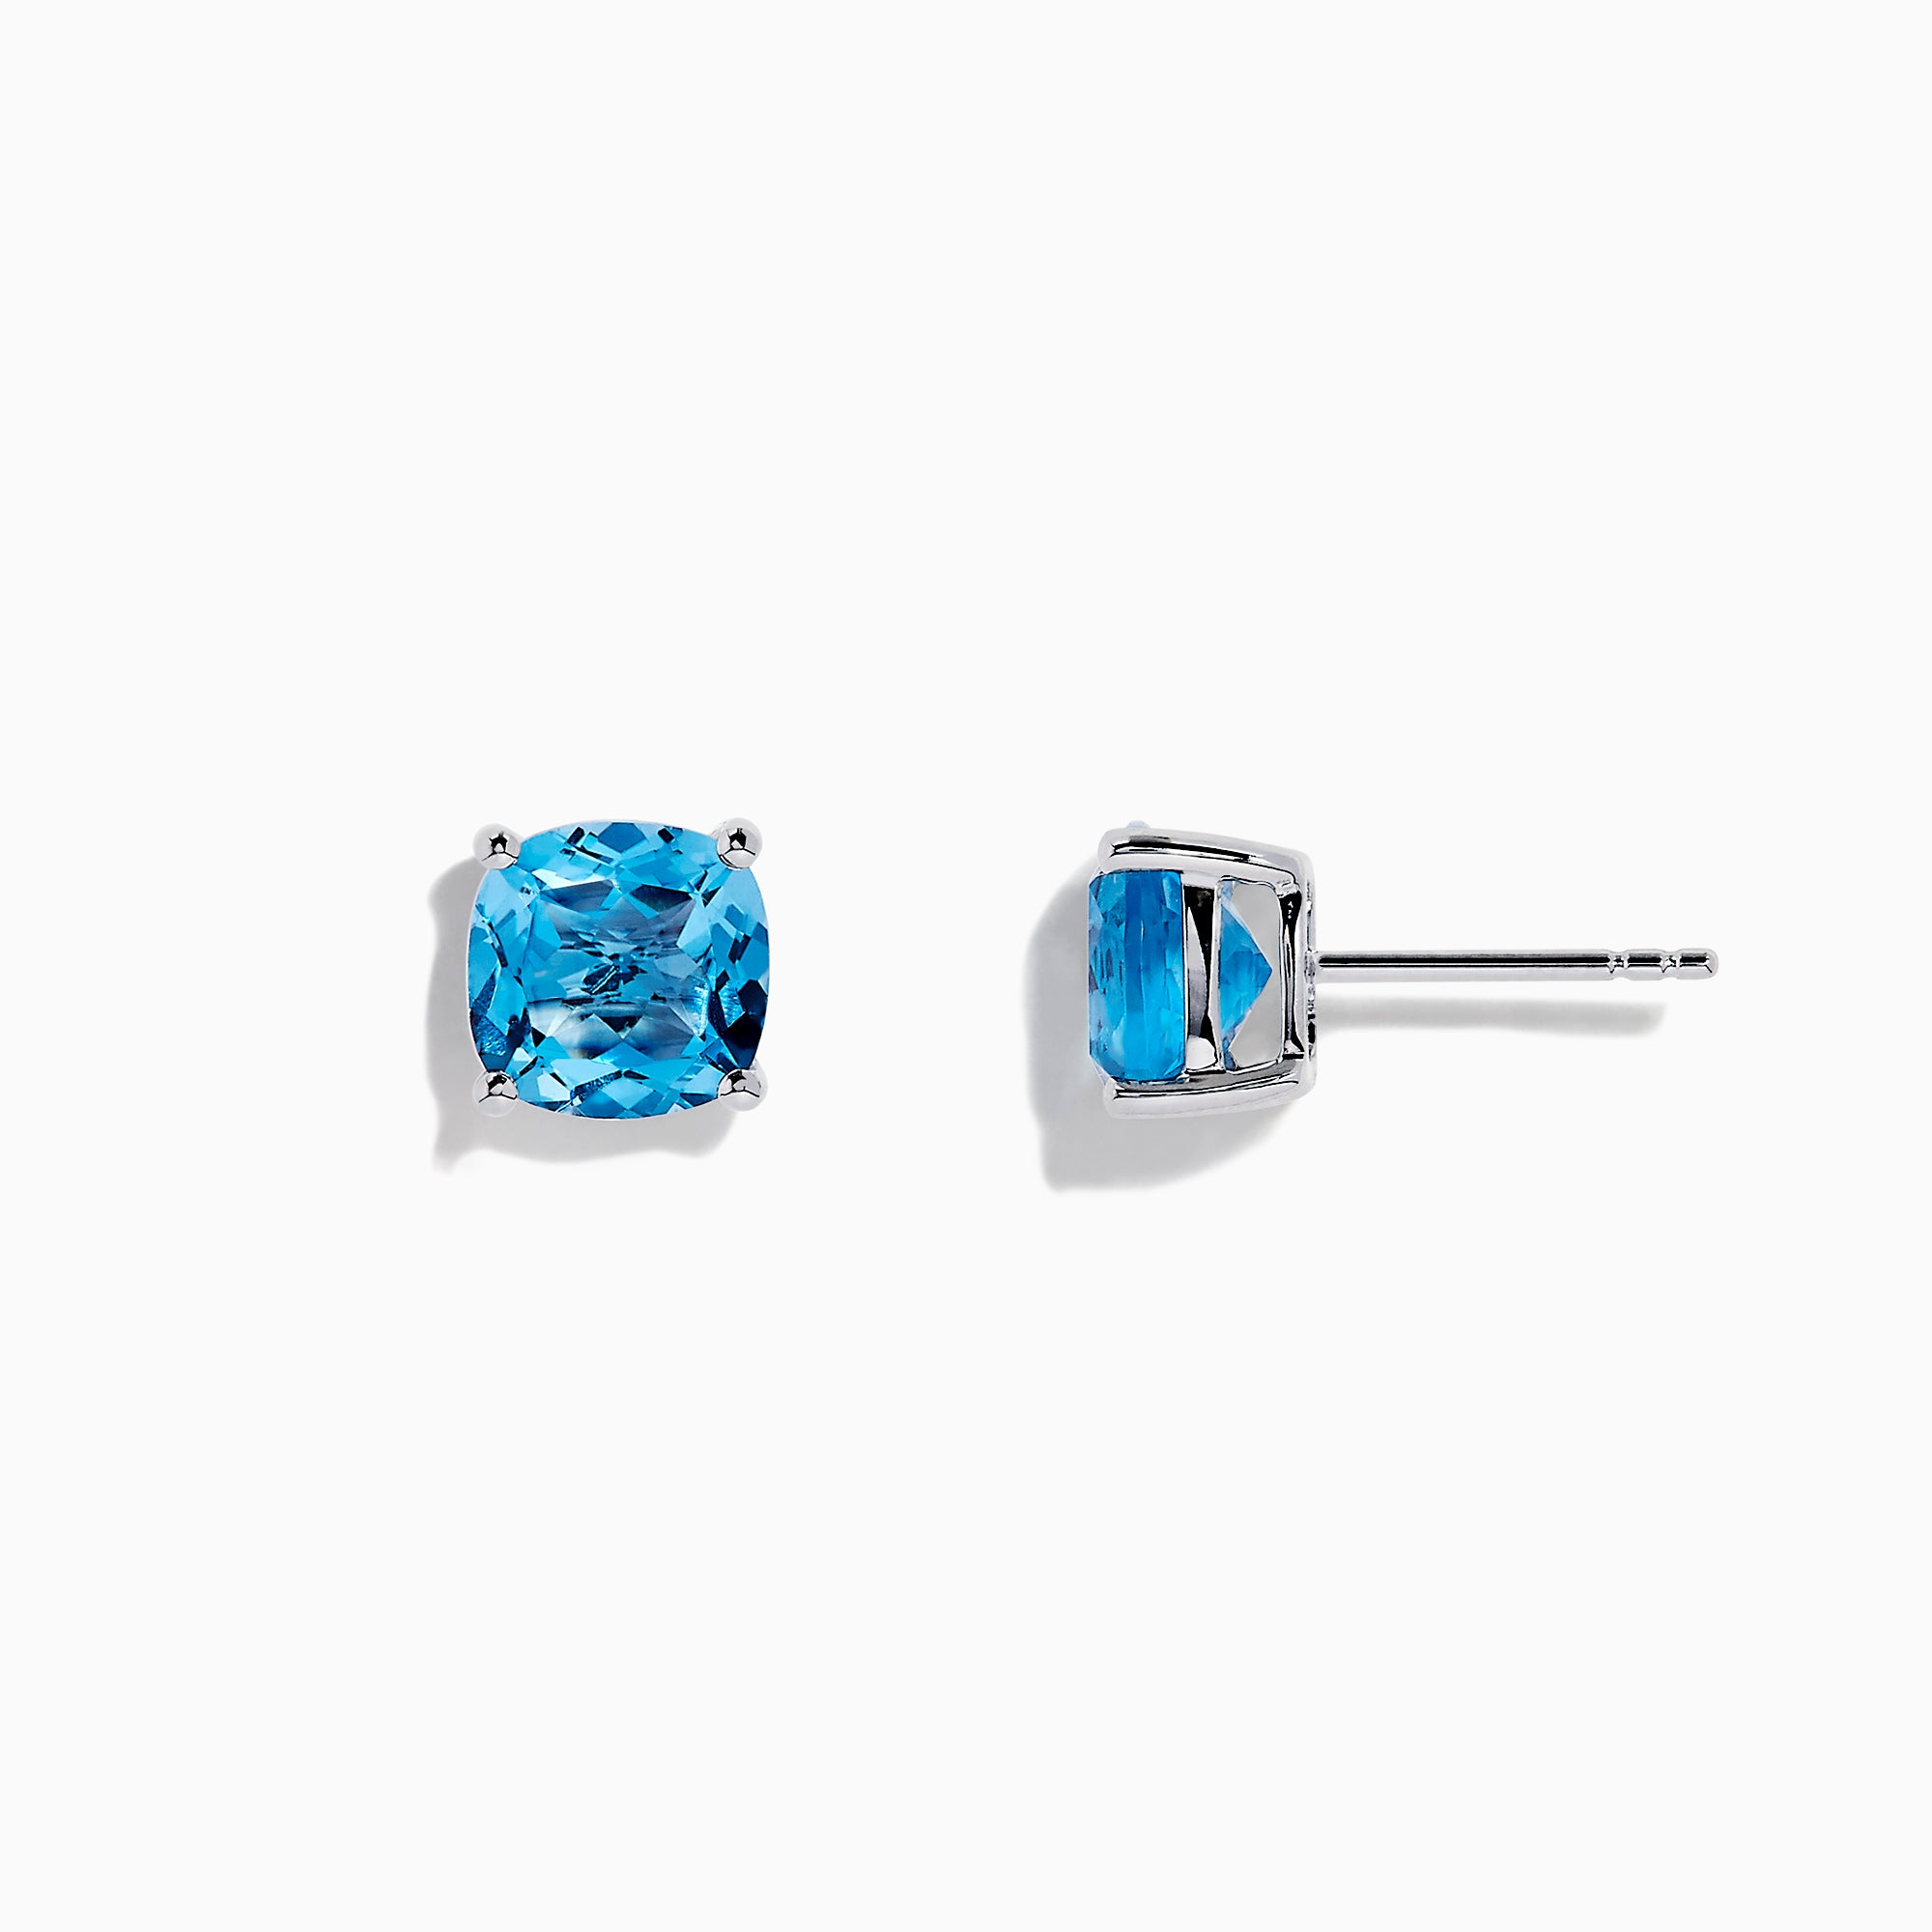 Effy 14K White Gold Blue Topaz Stud Earrings, 5.15 TCW